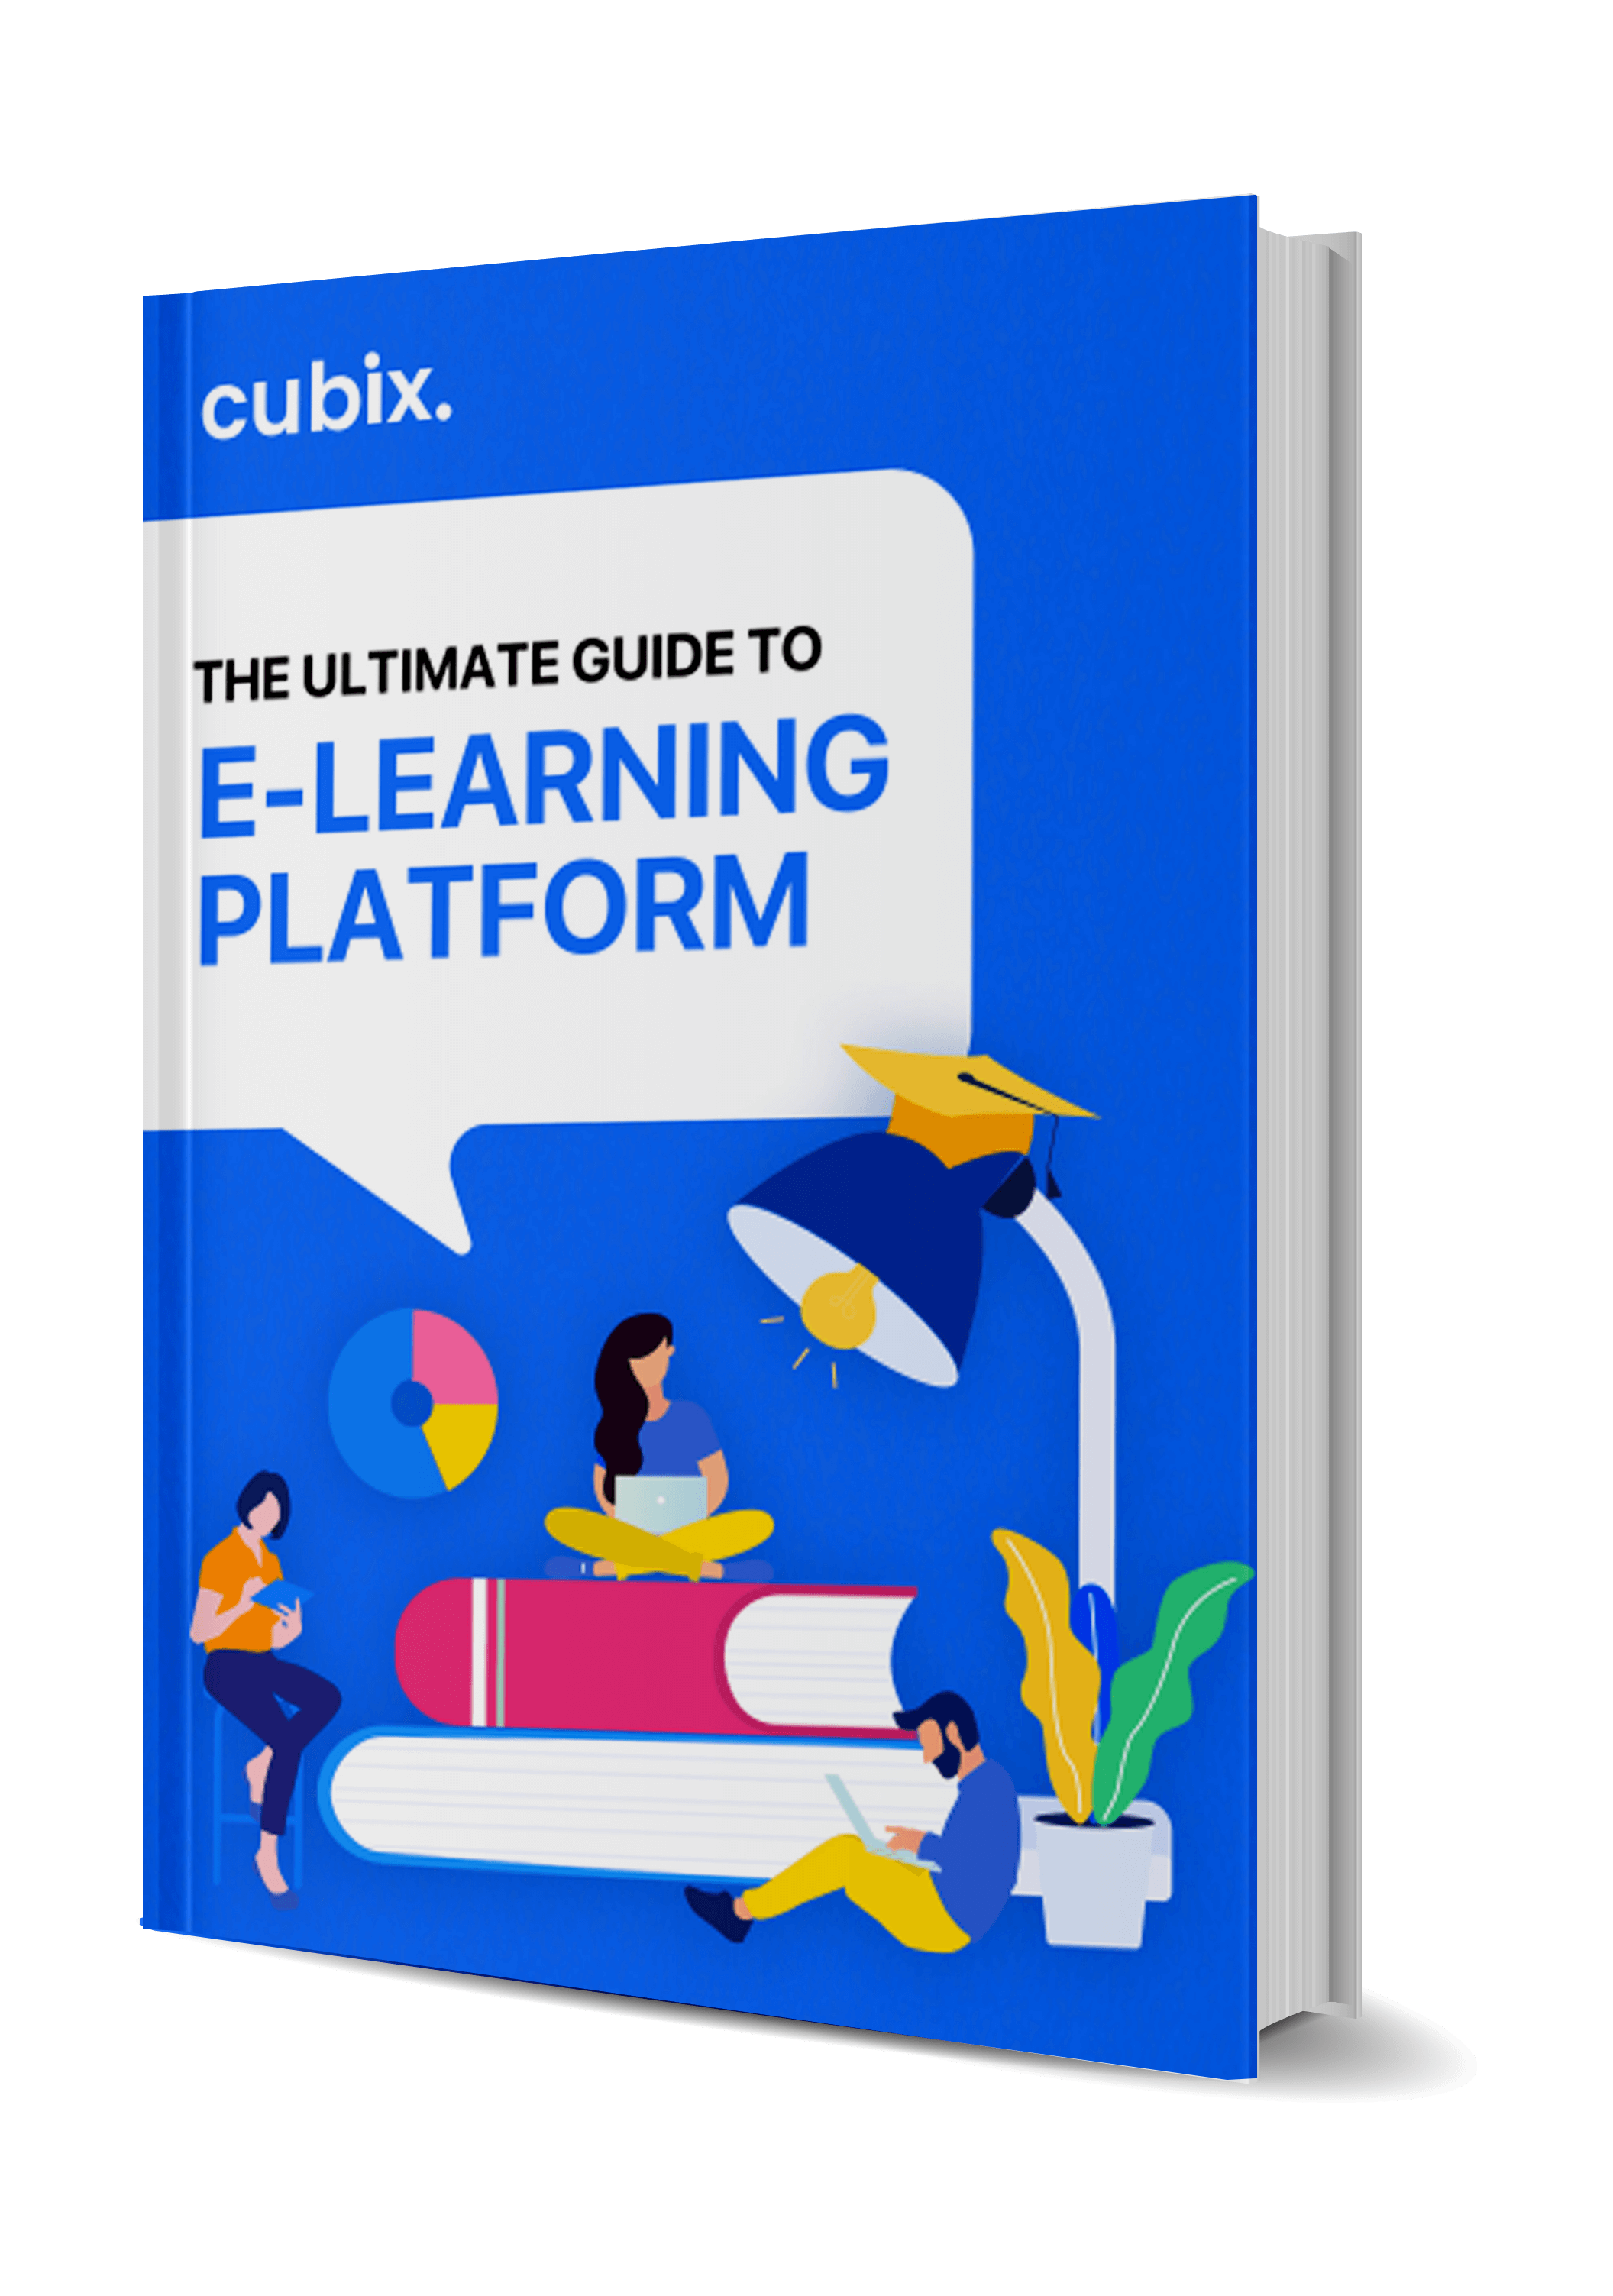 The ultimate guide to e-learning platfrom